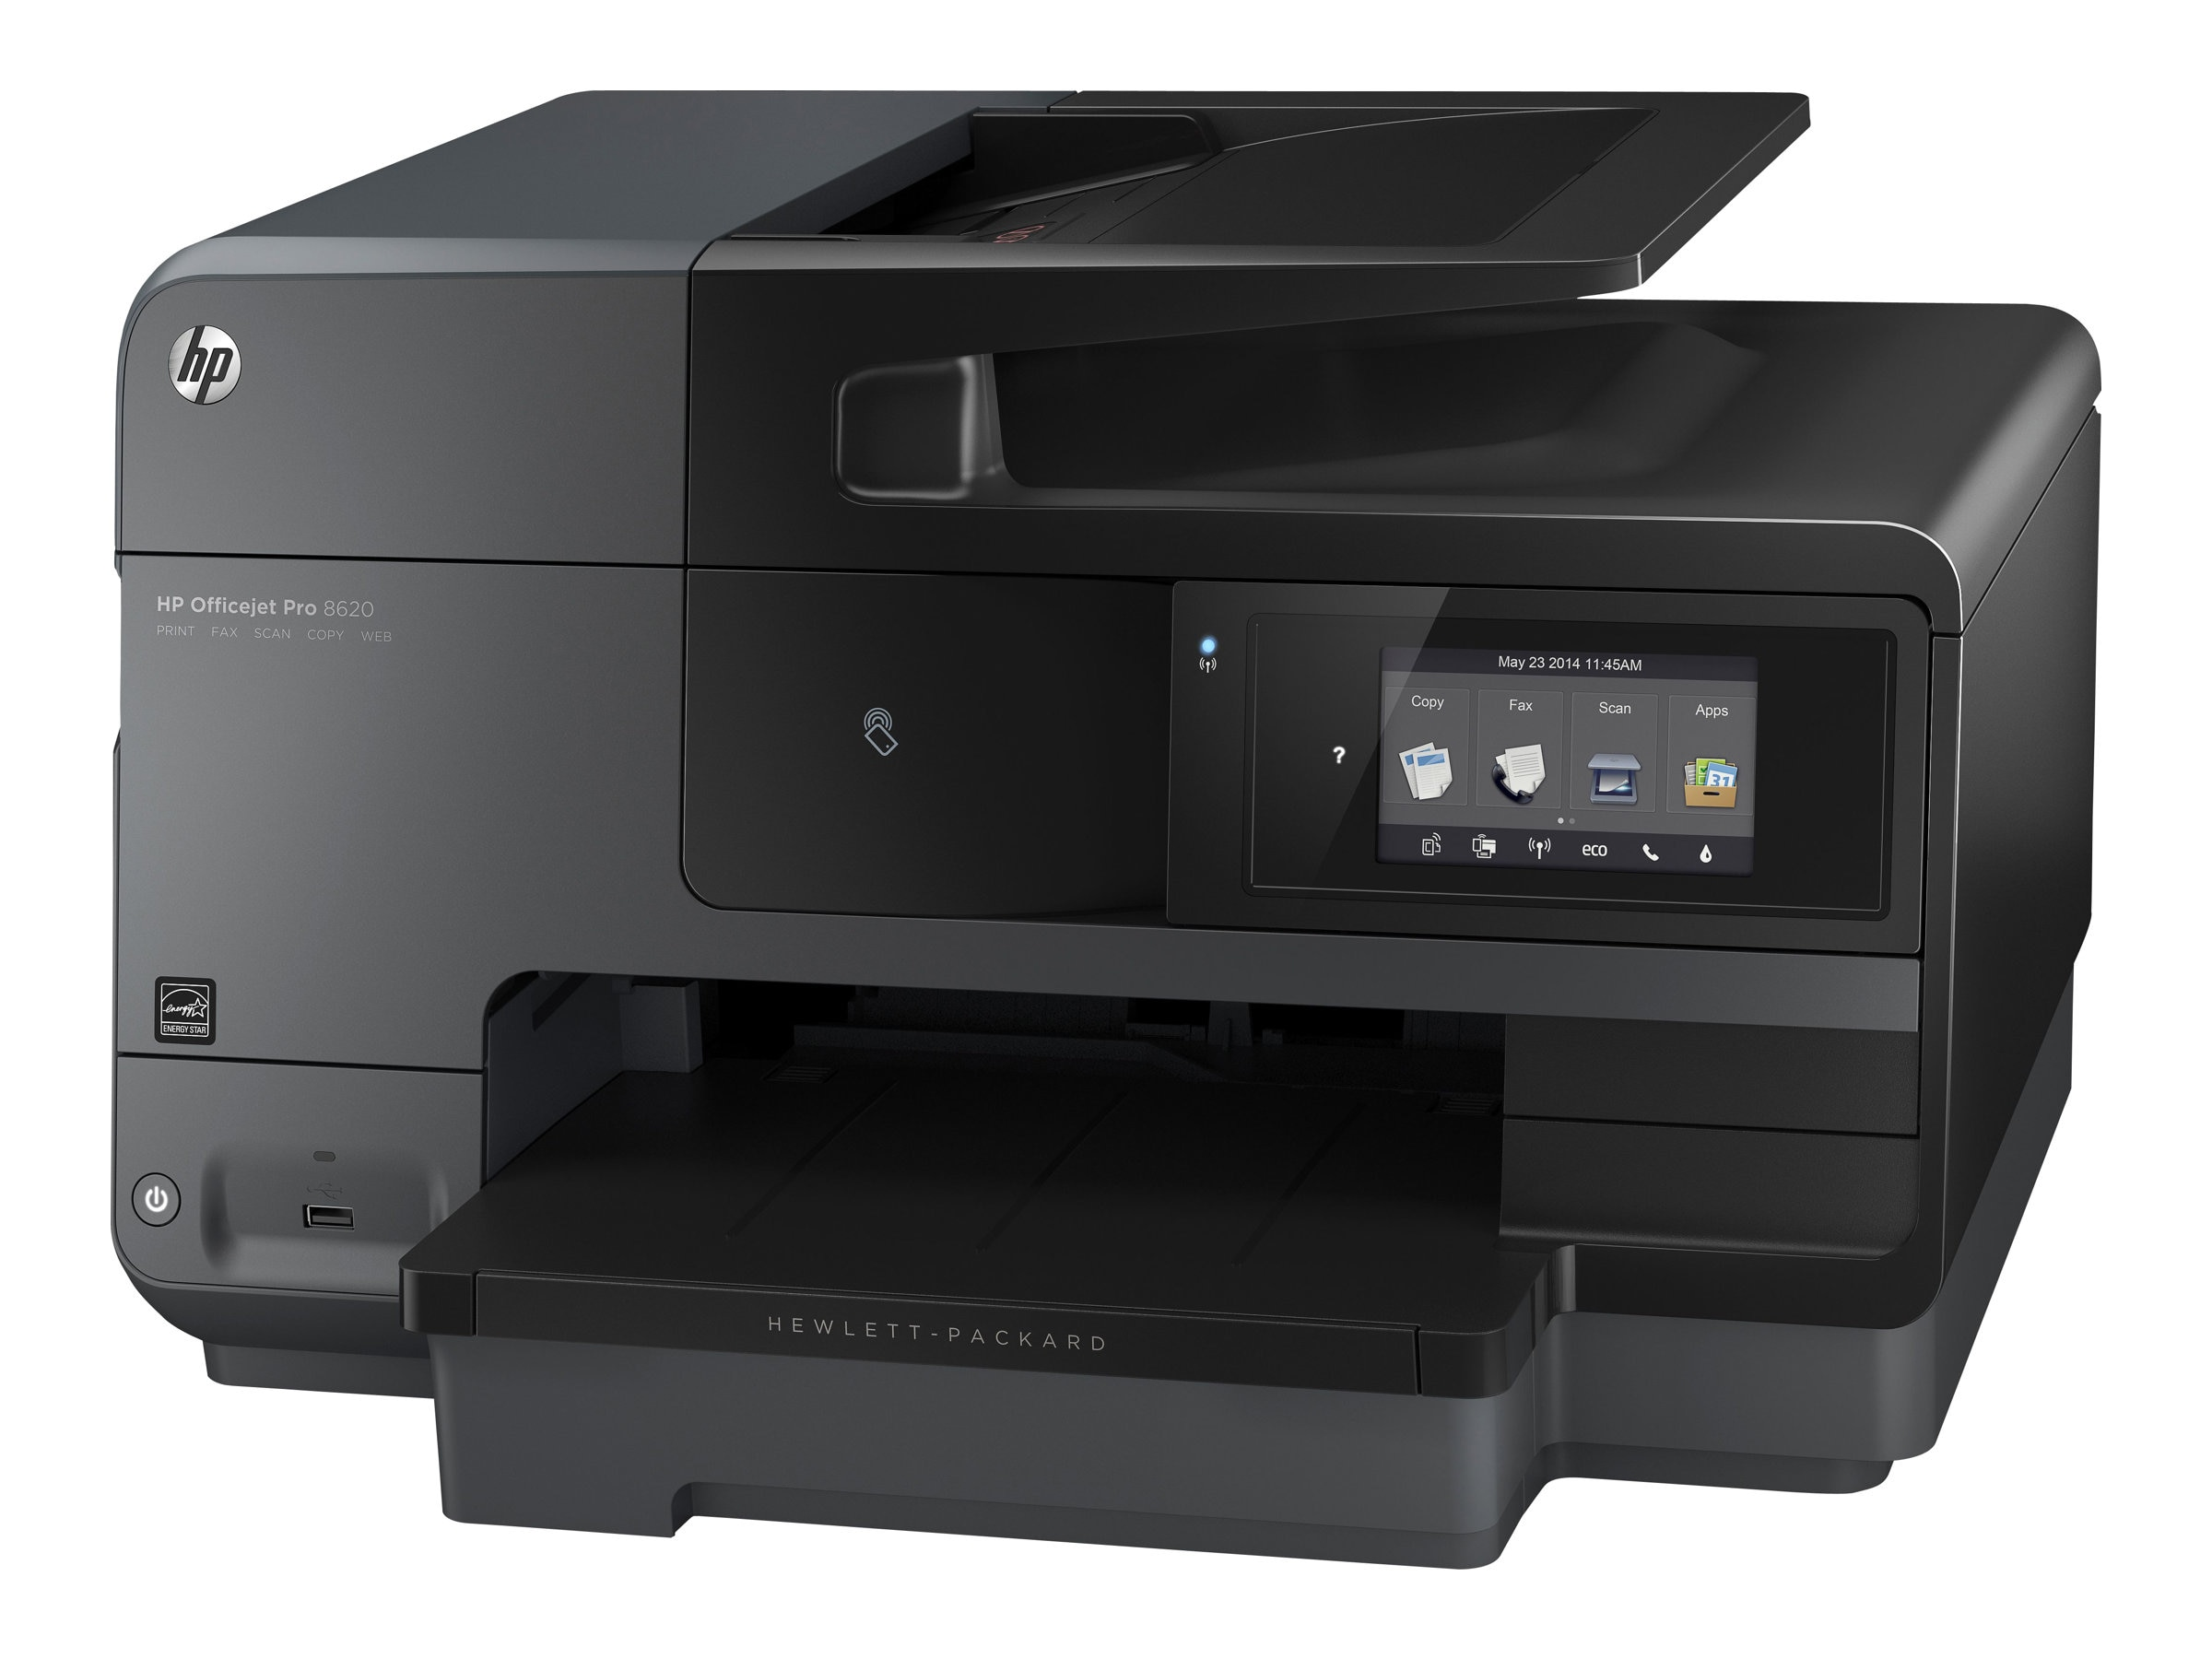 HP Officejet Pro 8620 e-All-in-One Printer ($299.95 - $150 Instant Rebate = $149.95 Expires 4 30)